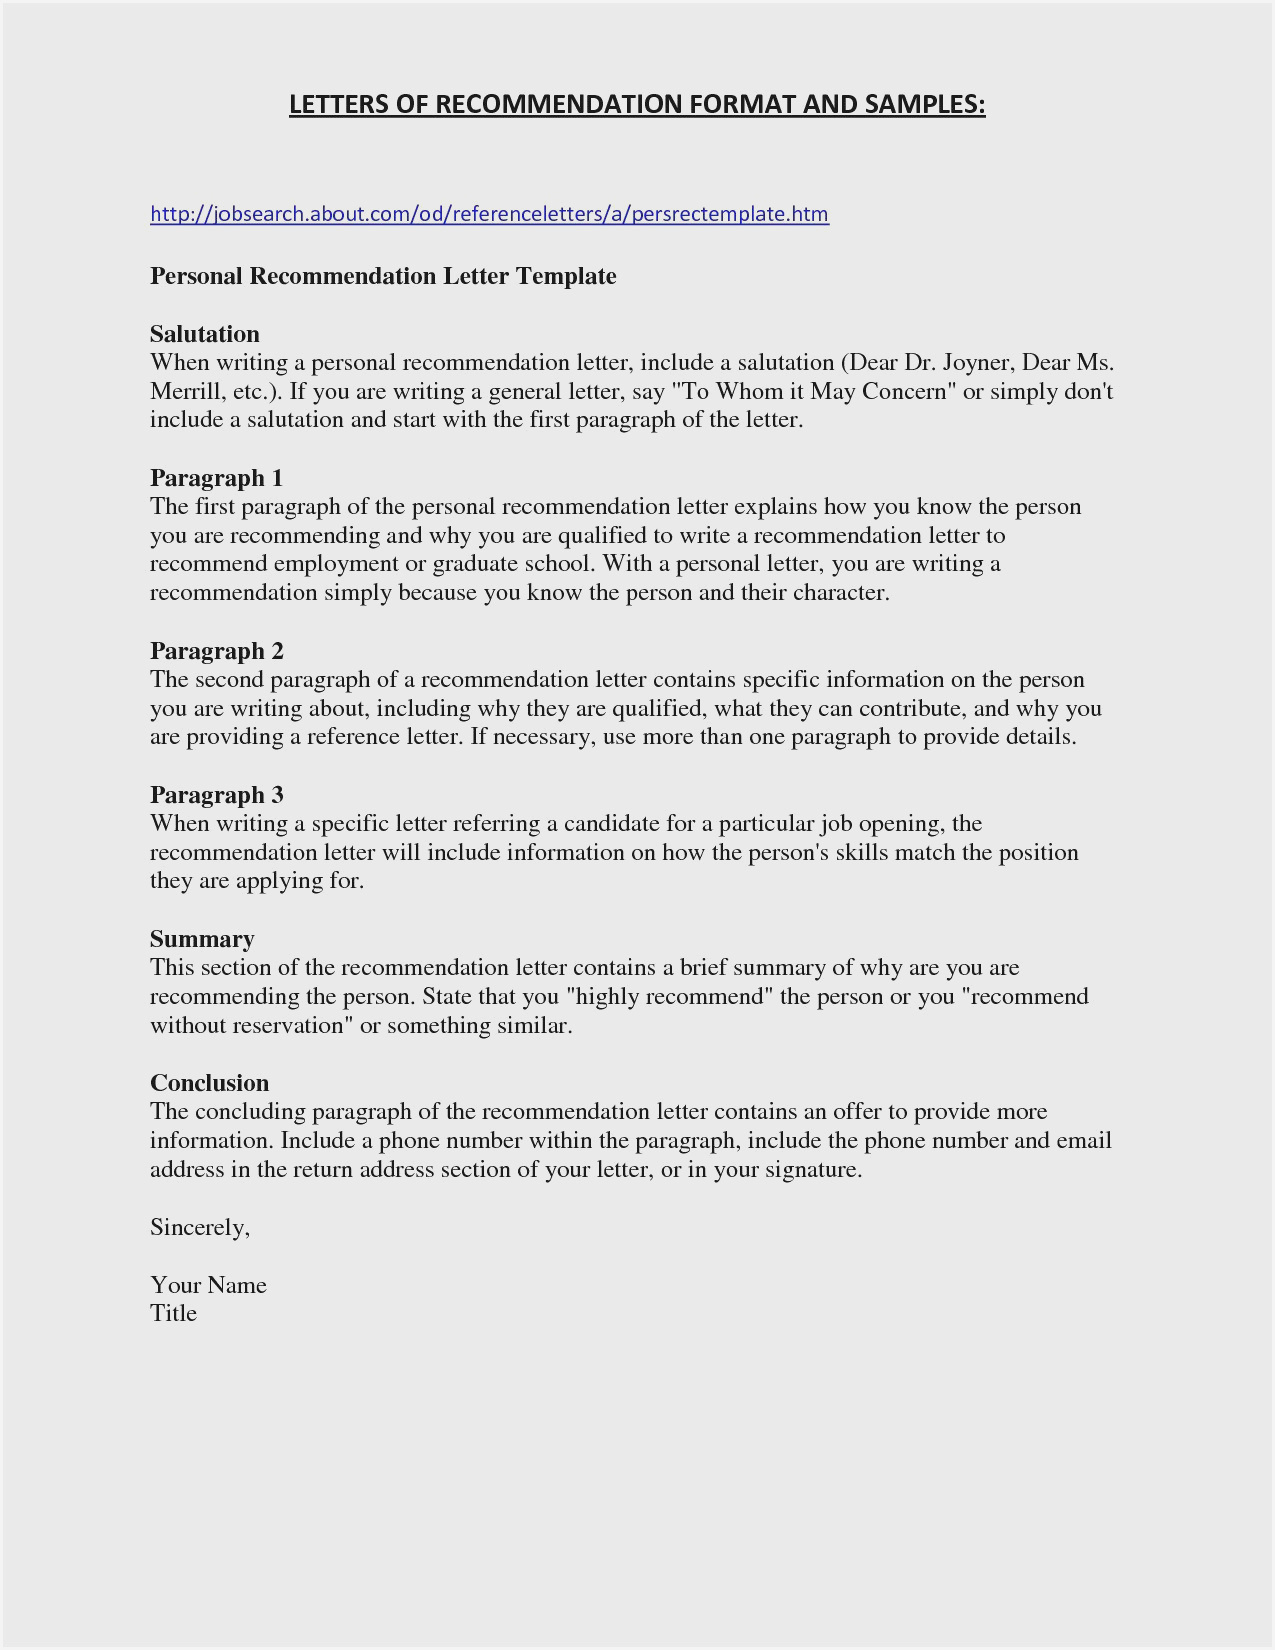 winway resume deluxe sample for mac cover letter and thank you microsoft word template Resume Winway Resume Deluxe For Mac